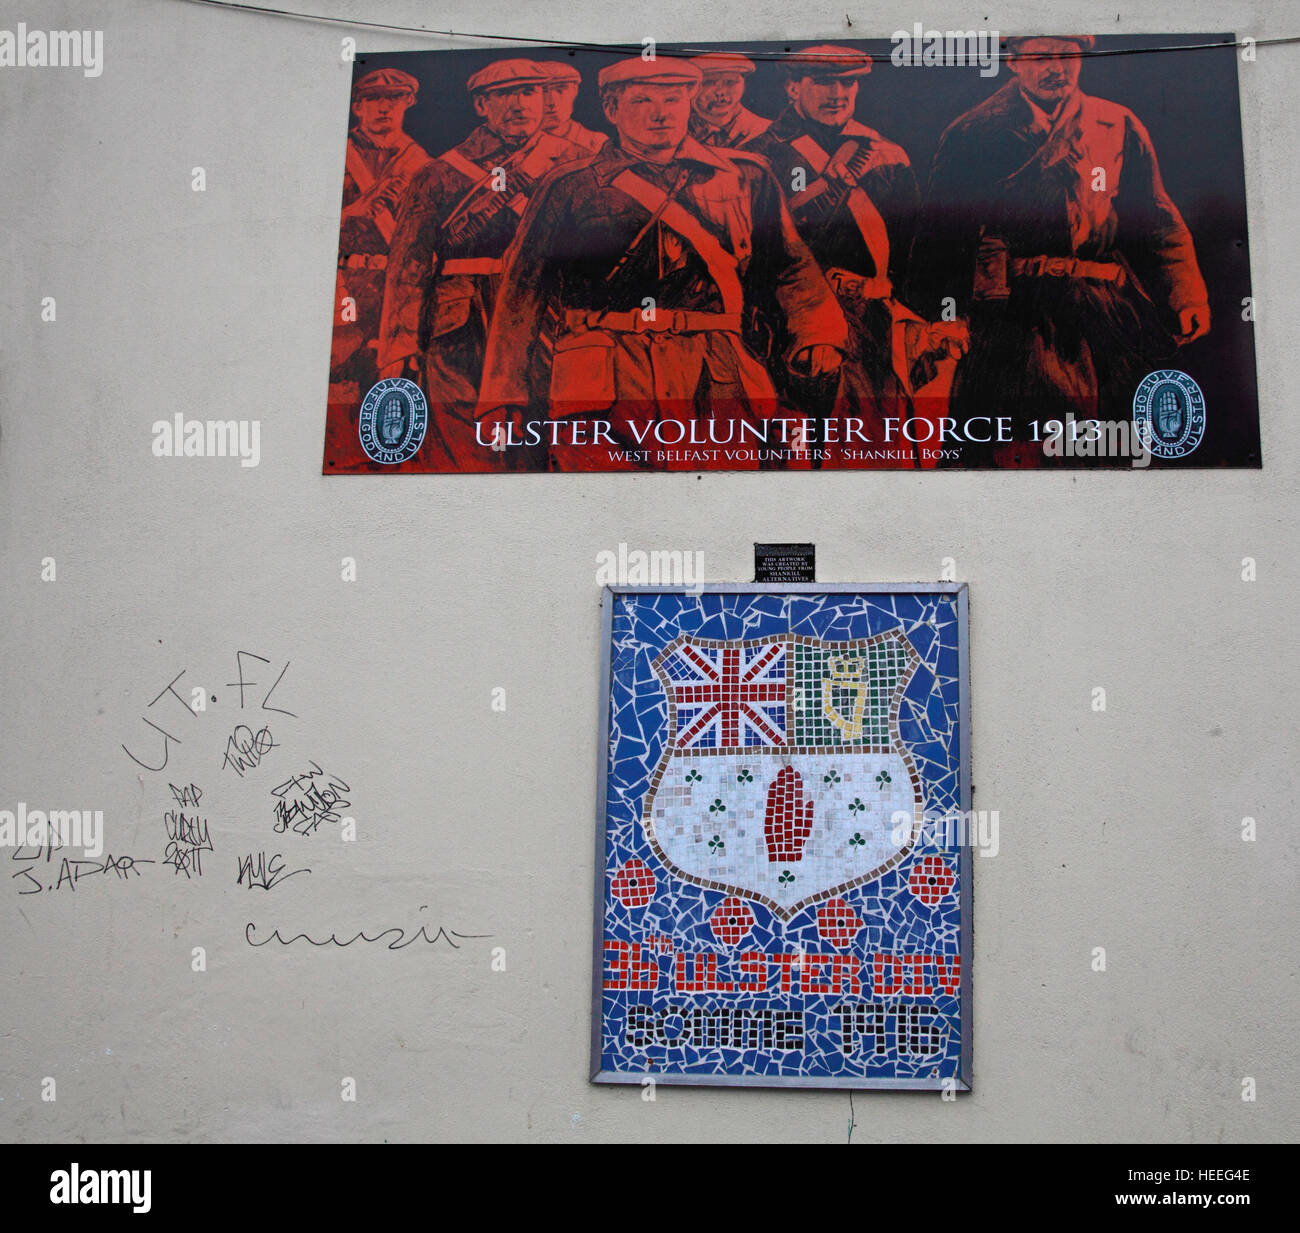 Belfast Unionist, Loyalist Murals,UVF,Ulster Volunteer Force,1913 - Stock Image